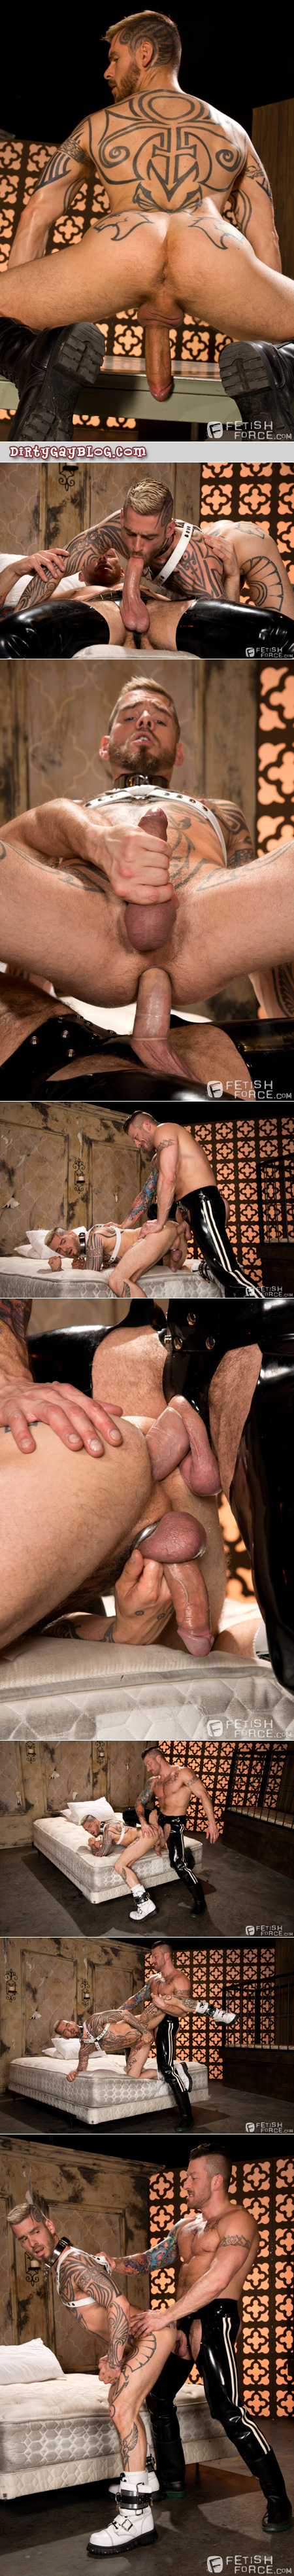 Leather and latex muscle fetish gay sex.